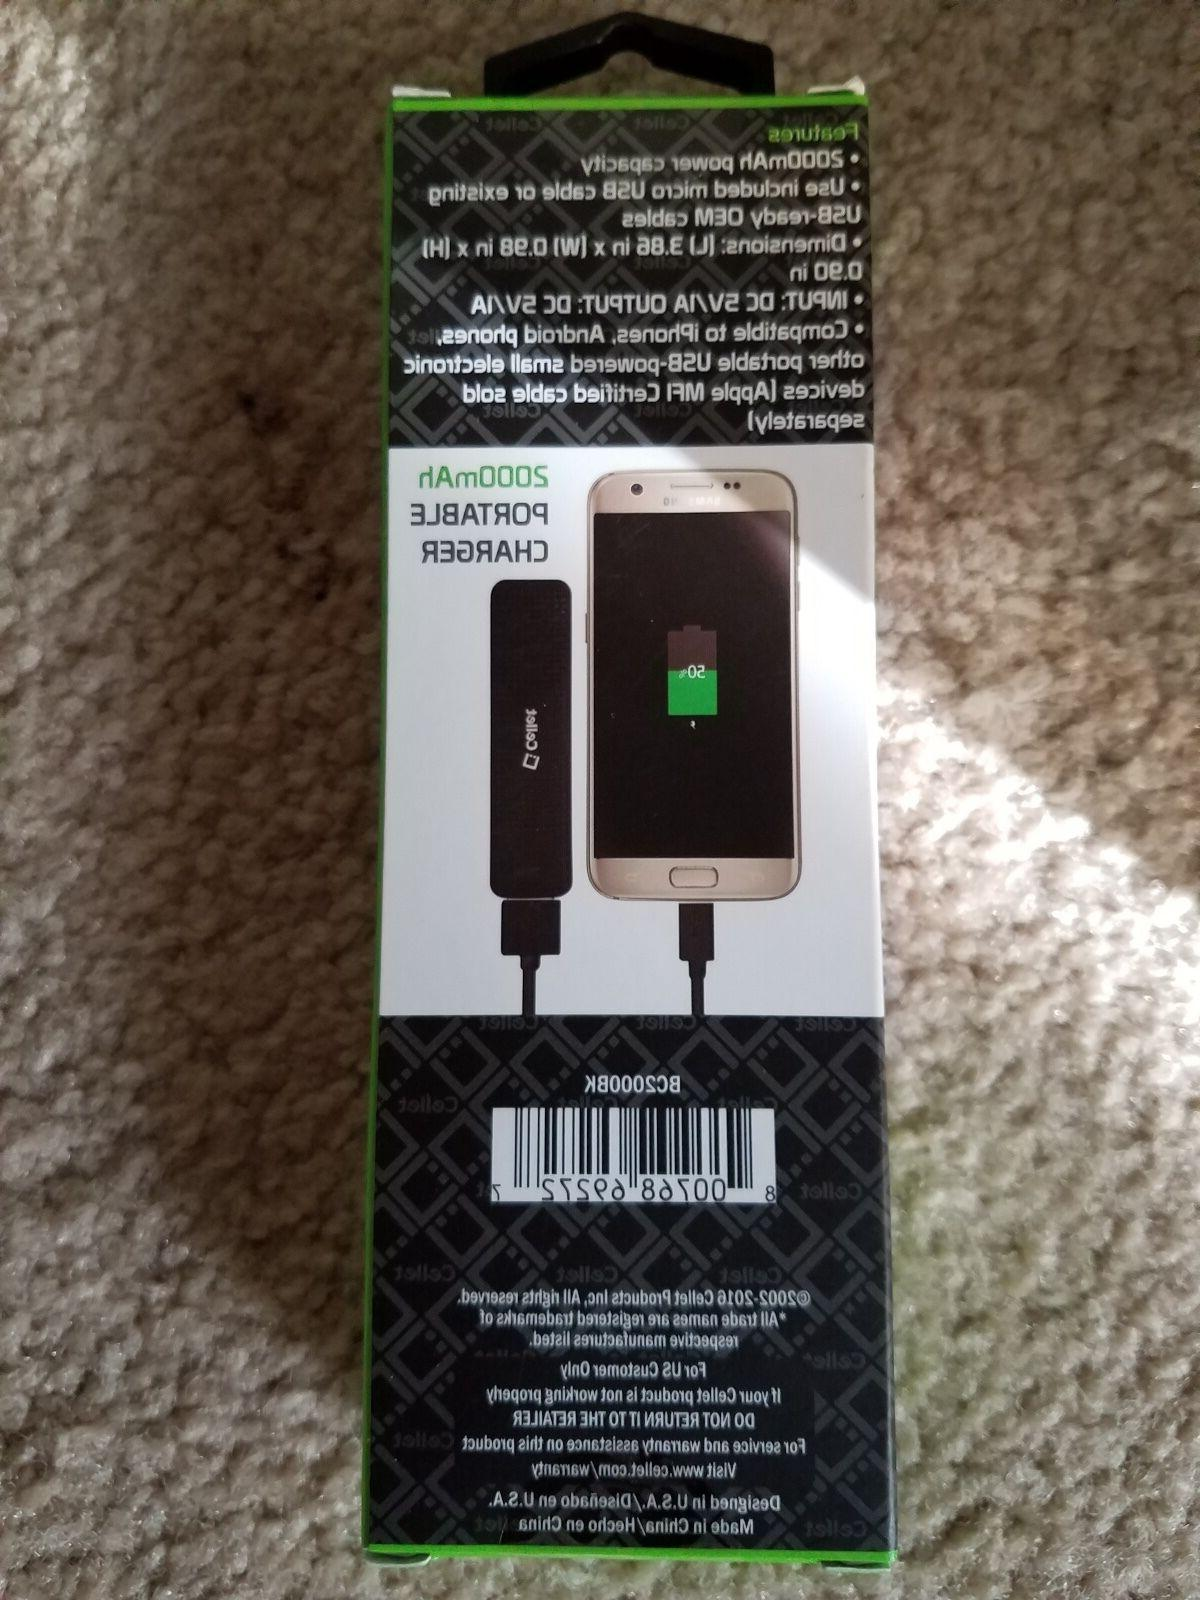 POWER BANK CABLE INCLUDED USE CHARGER